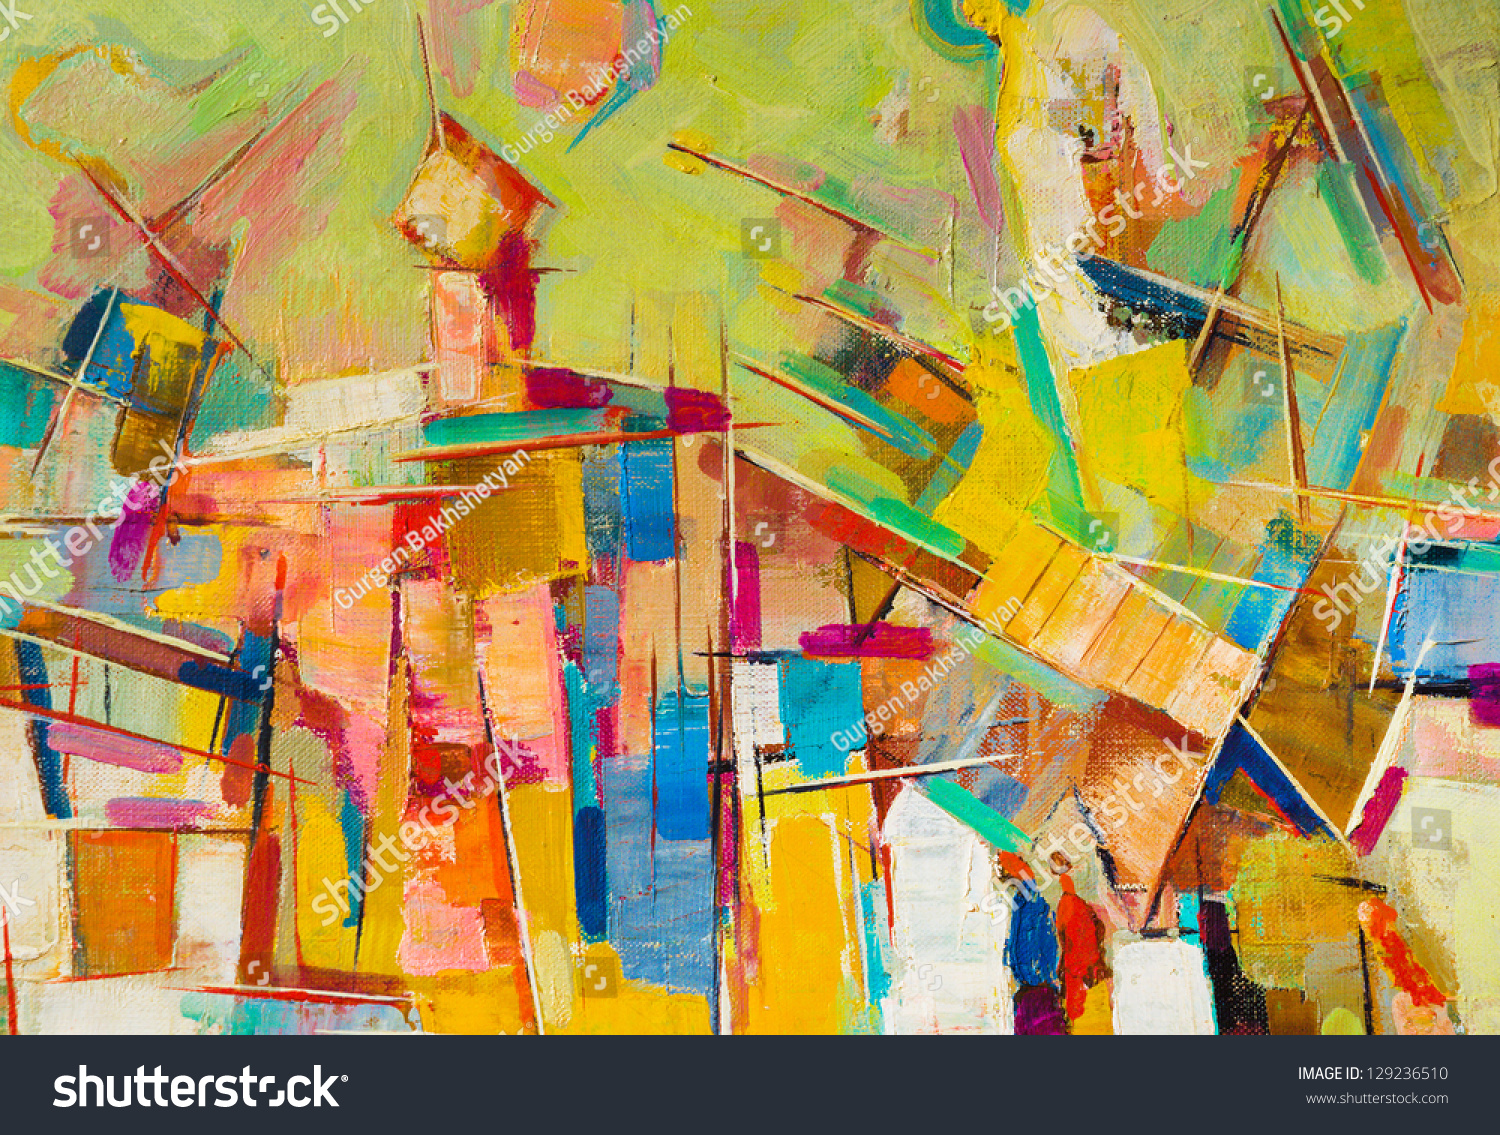 Abstract colorful oil painting on canvas #129236510